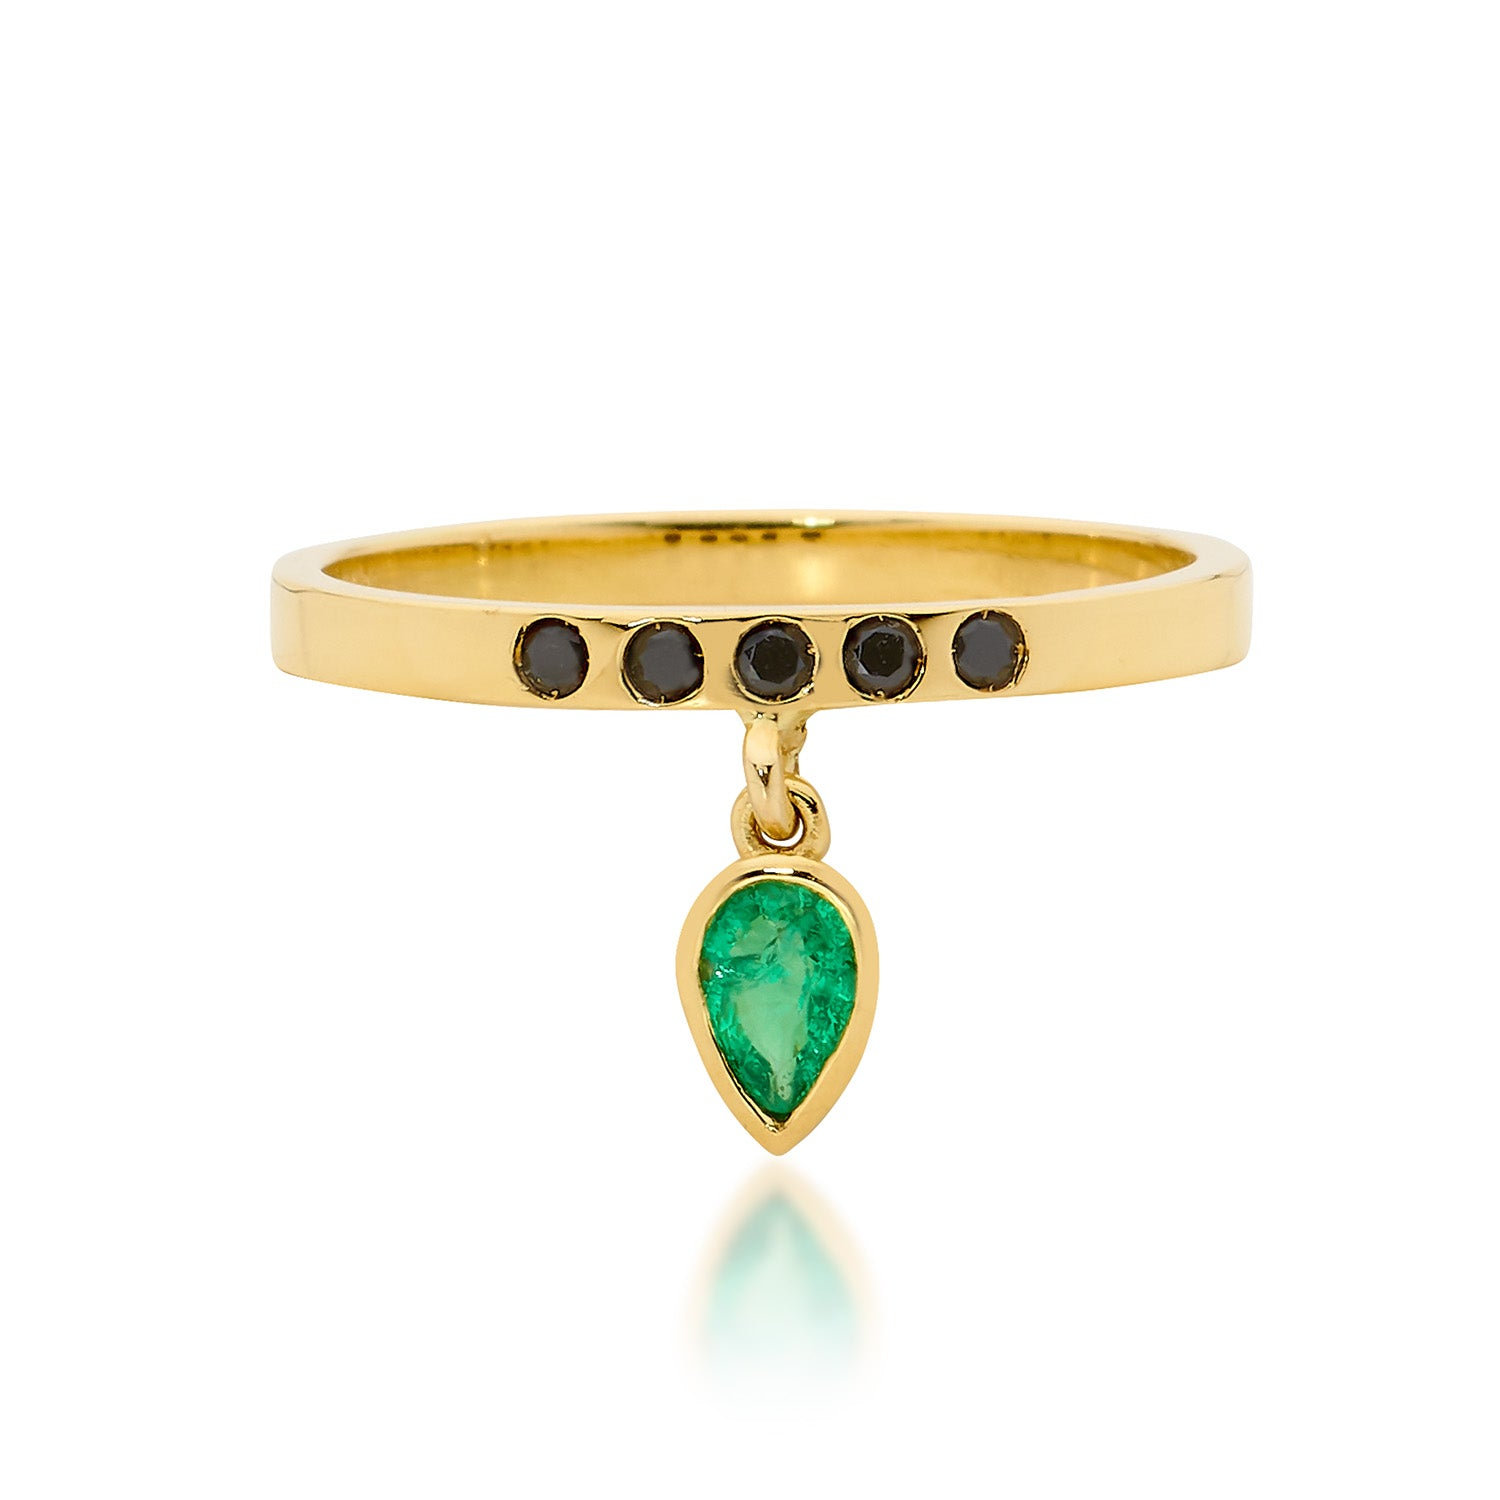 green emerald drop, emerald ring, small ring, stacking ring, rings, gold jewellery, gold jewelry, jewellery store, online jewelry store, jewellers